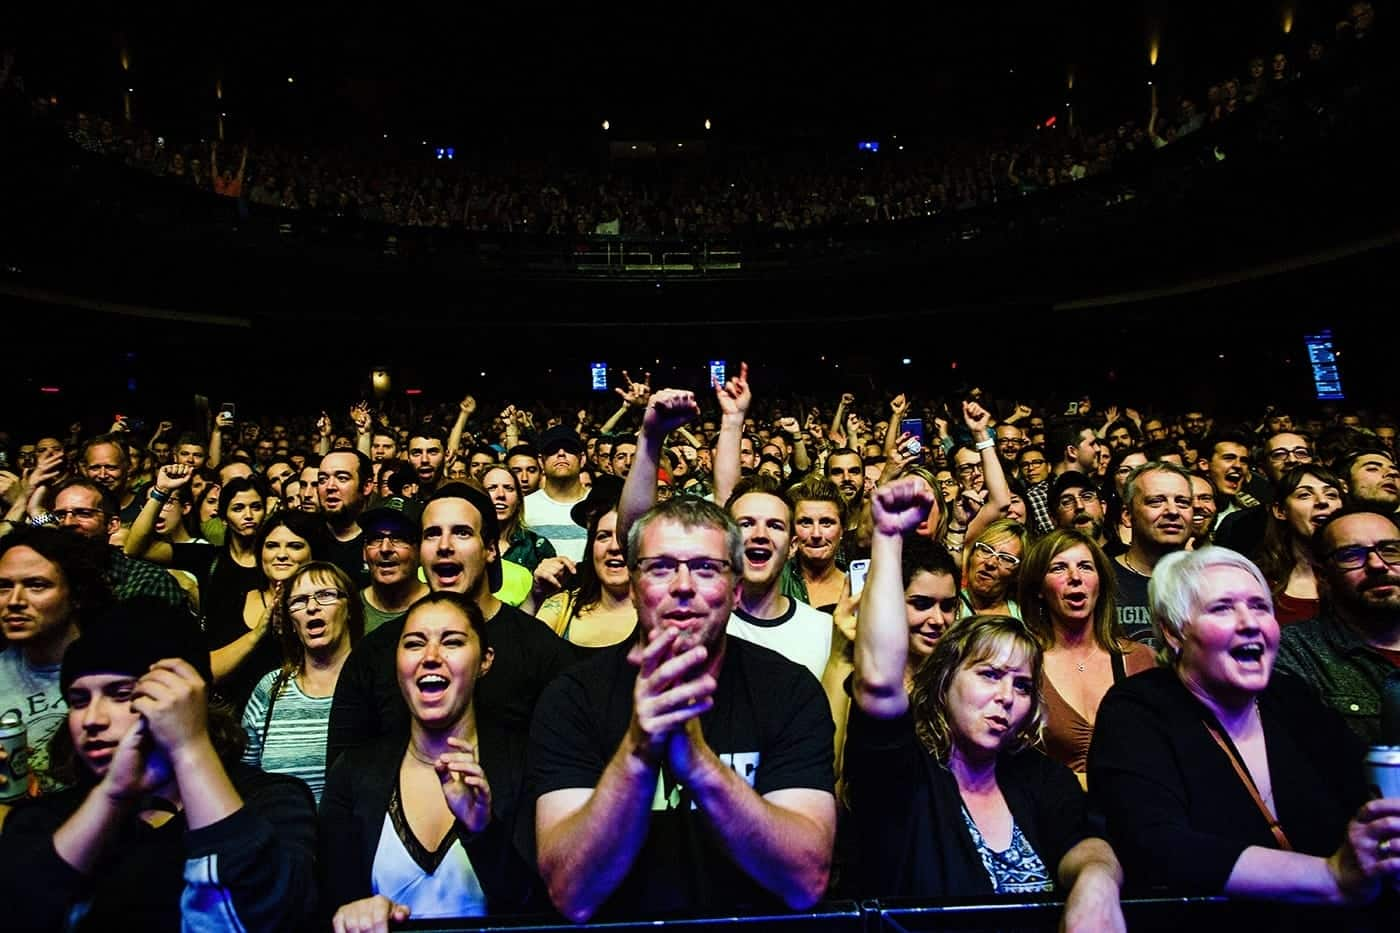 Nathaniel Rateliff & the Night Sweats crowd montreal